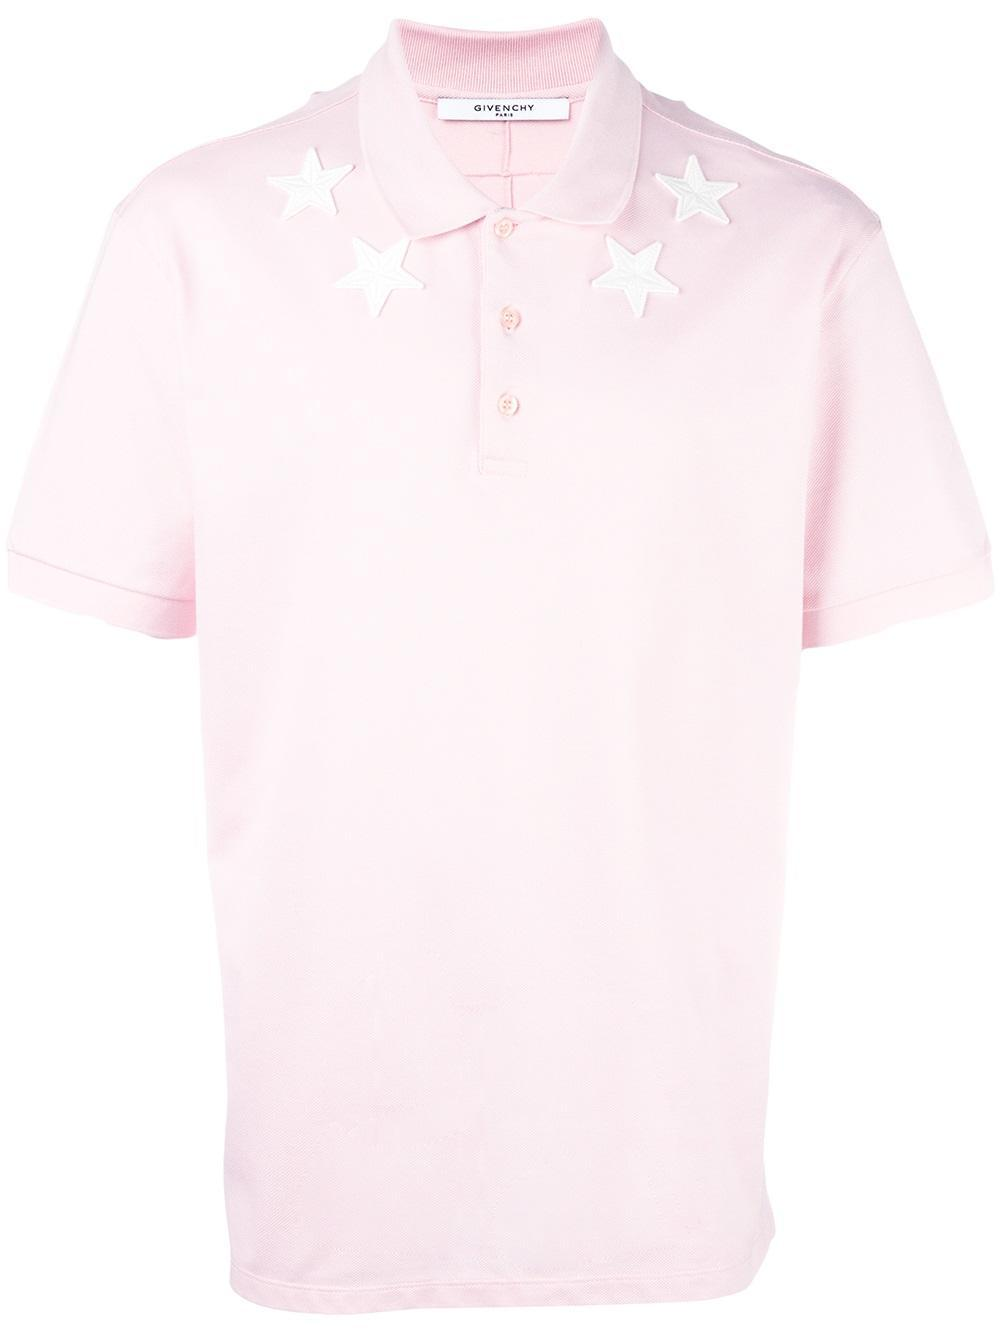 c6993c9d92fd4 Lyst - Givenchy Cuban-fit Star Appliqué Polo Shirt in Pink for Men